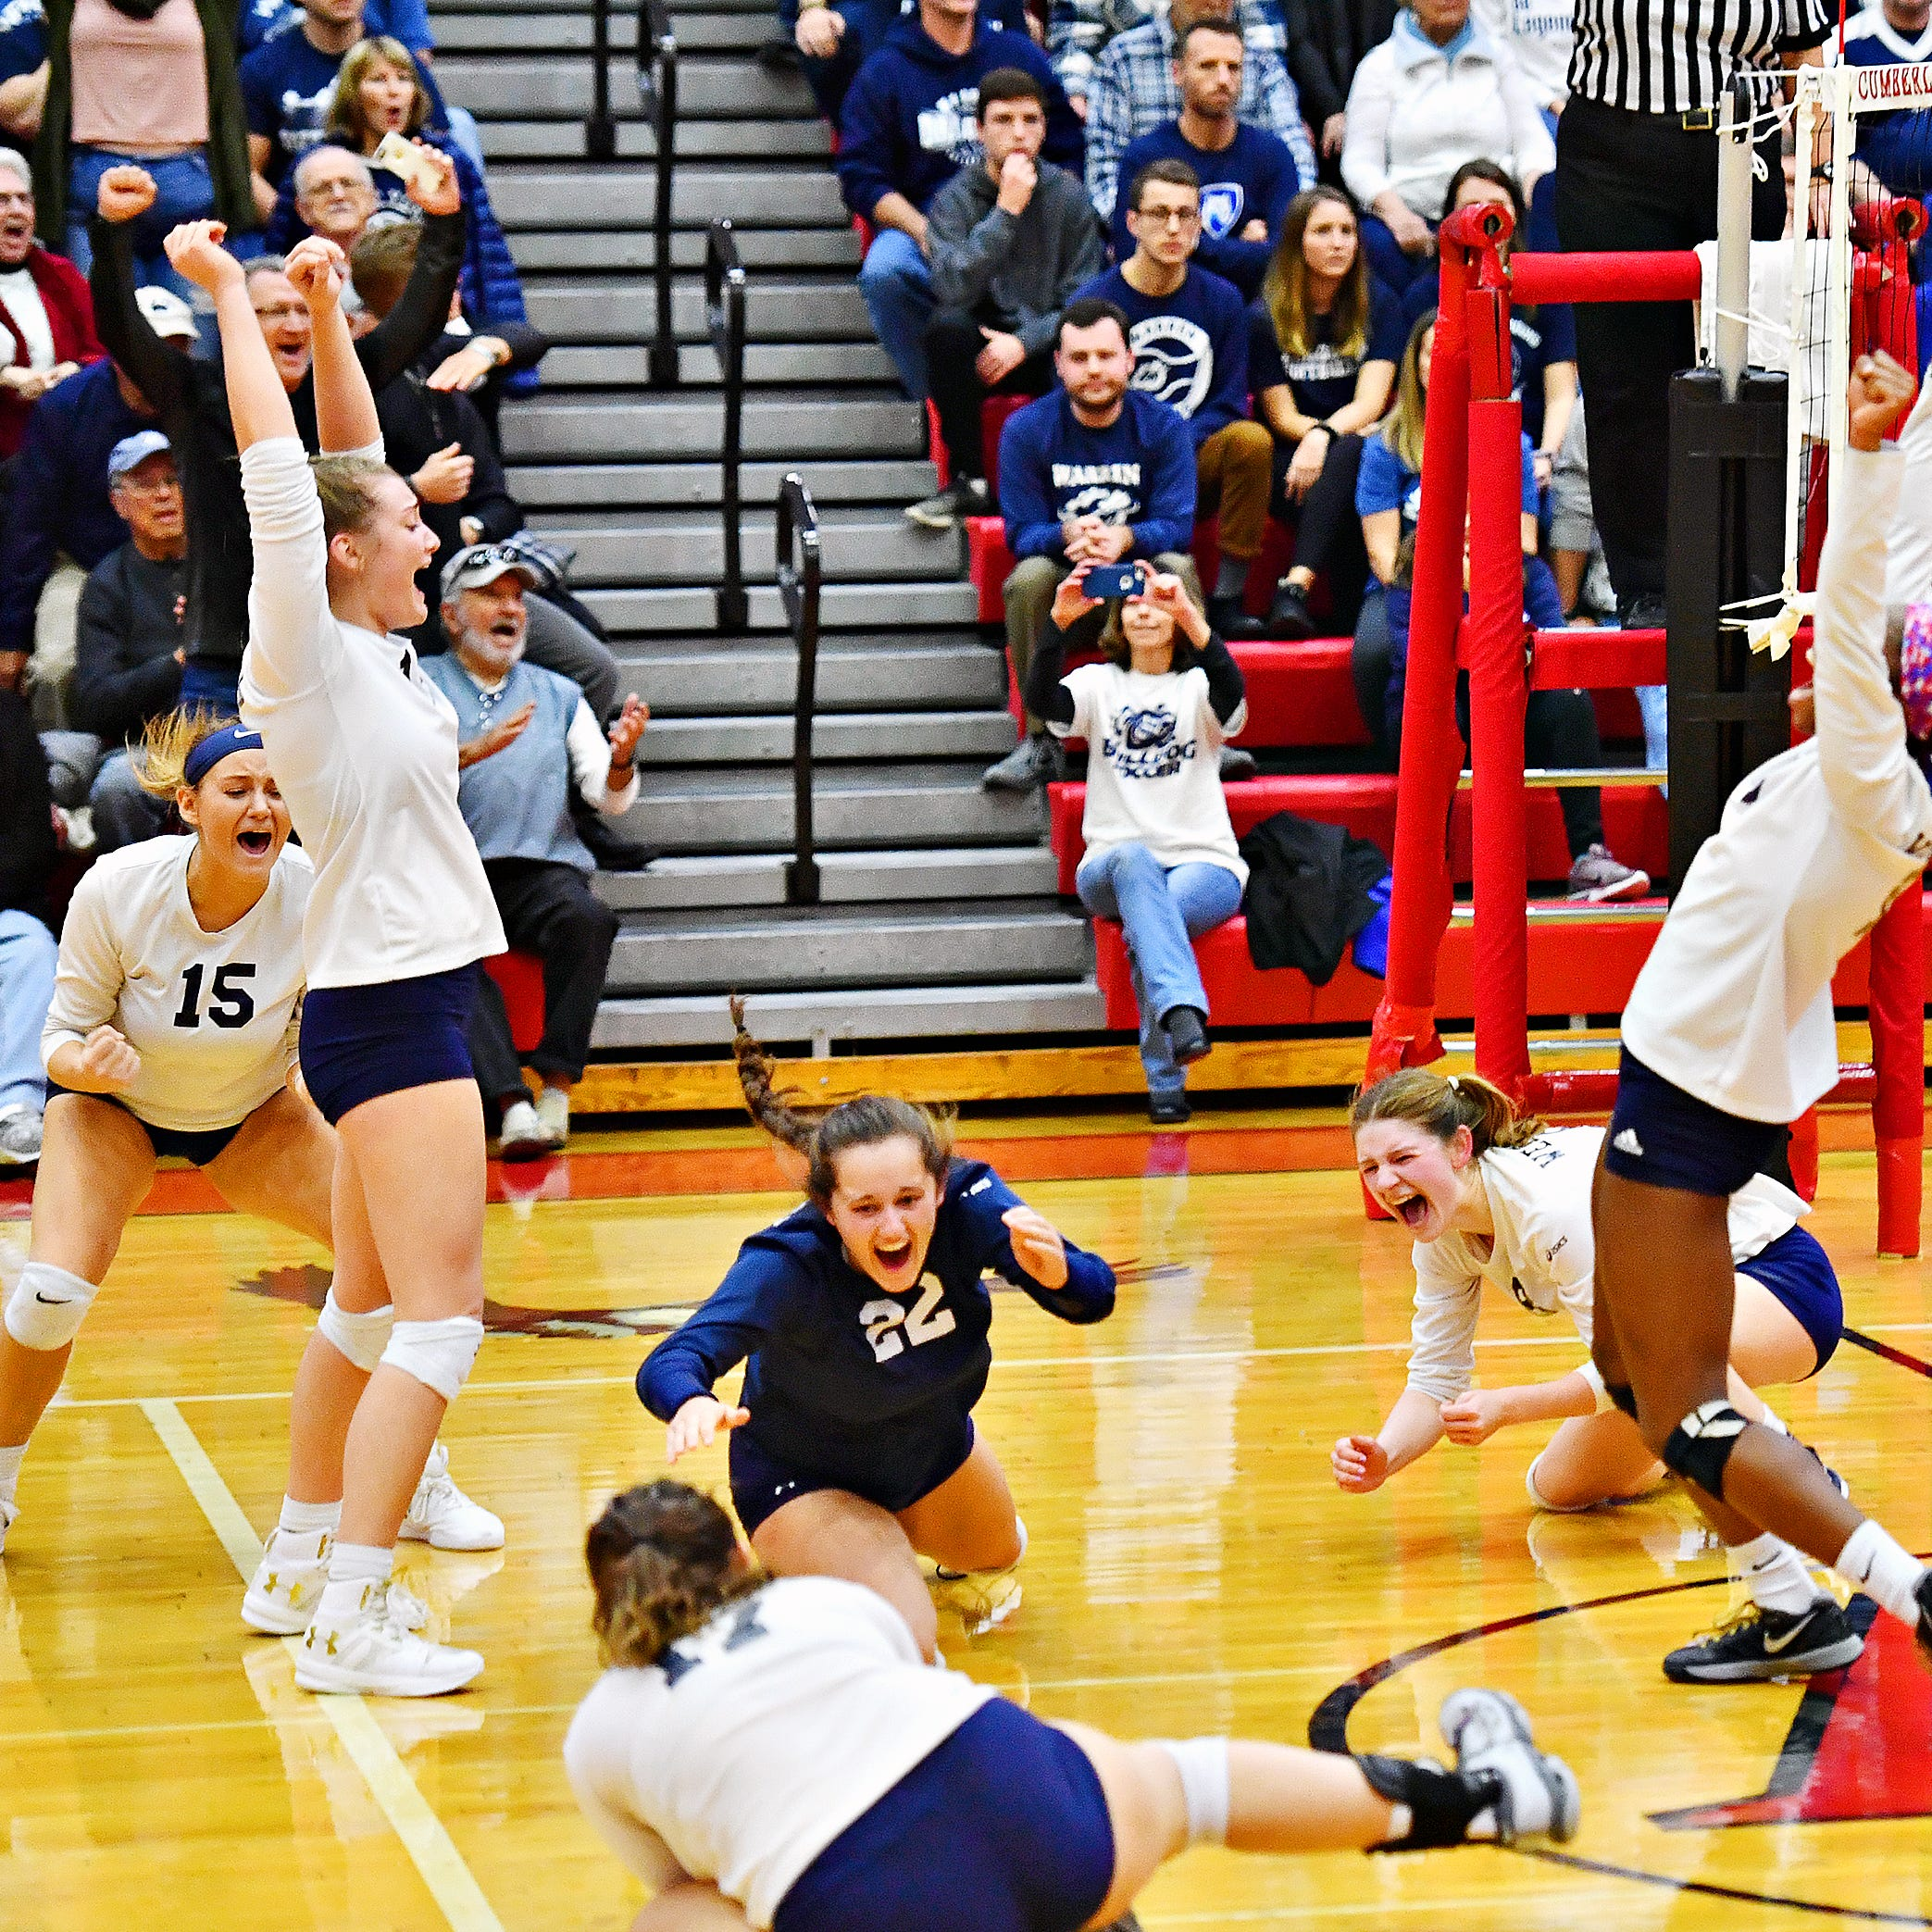 West York High captures its first-ever state girls' volleyball championship with 3-0 sweep